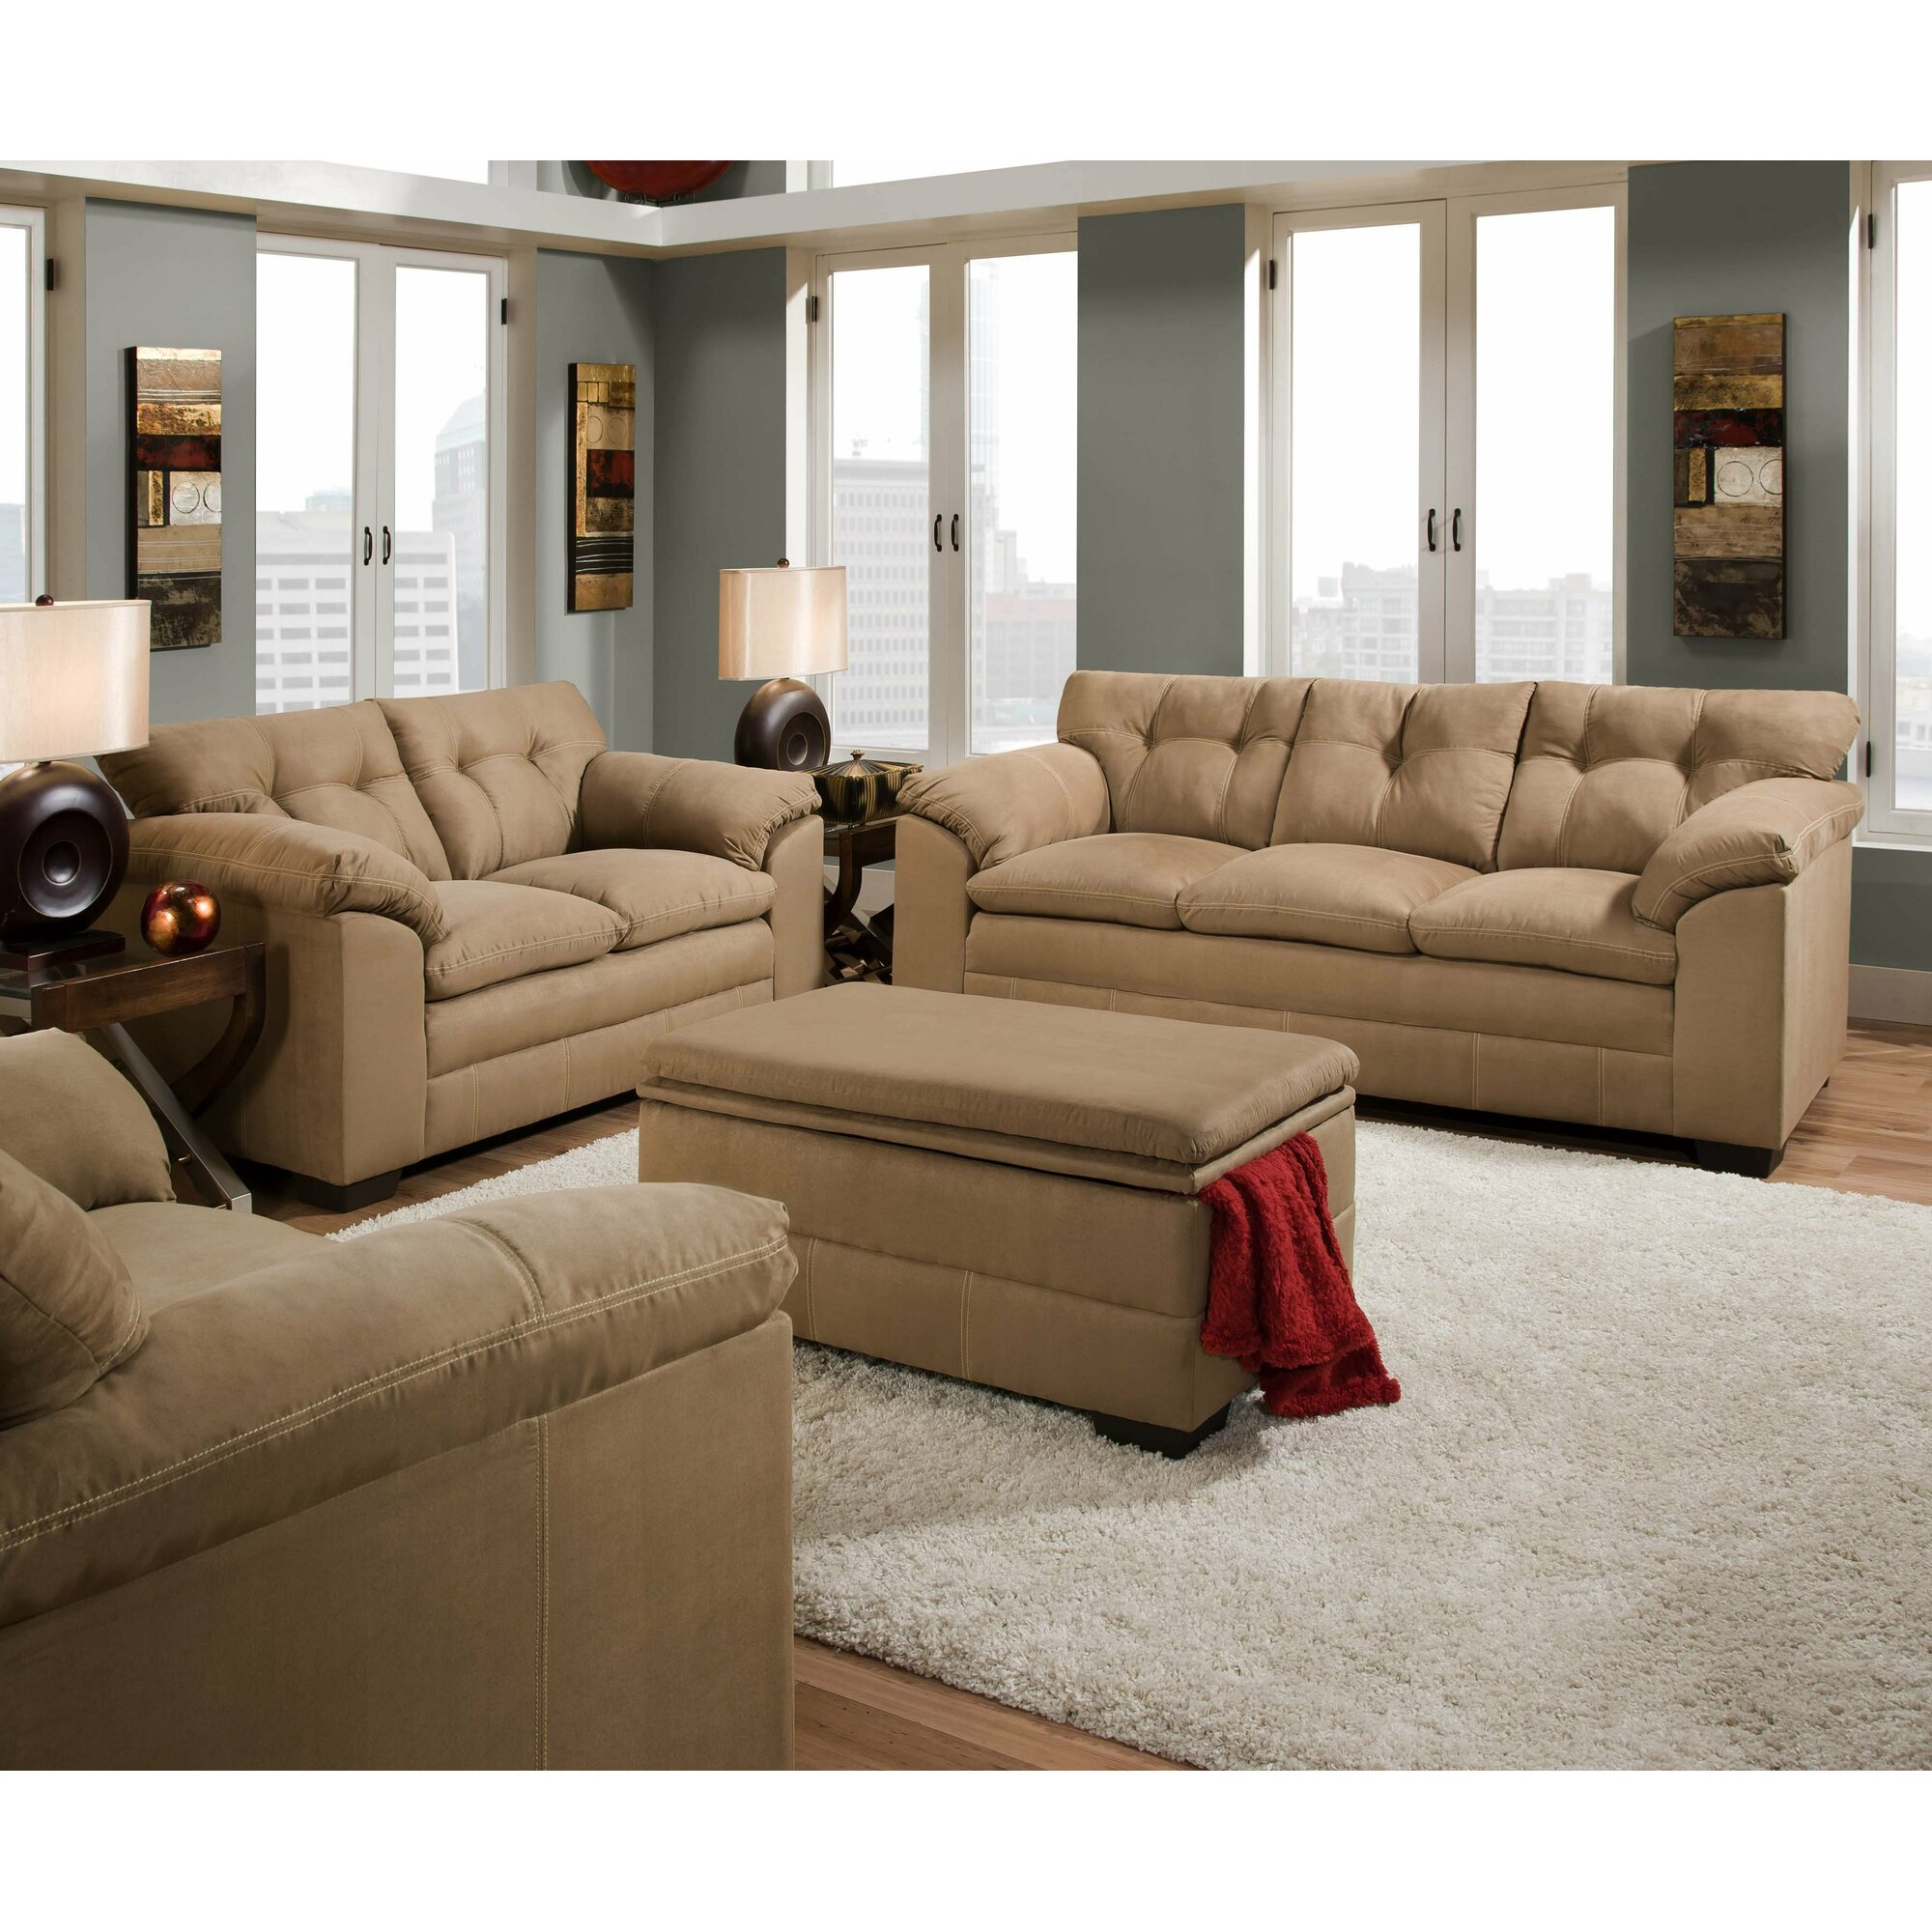 Simmons living room furniture